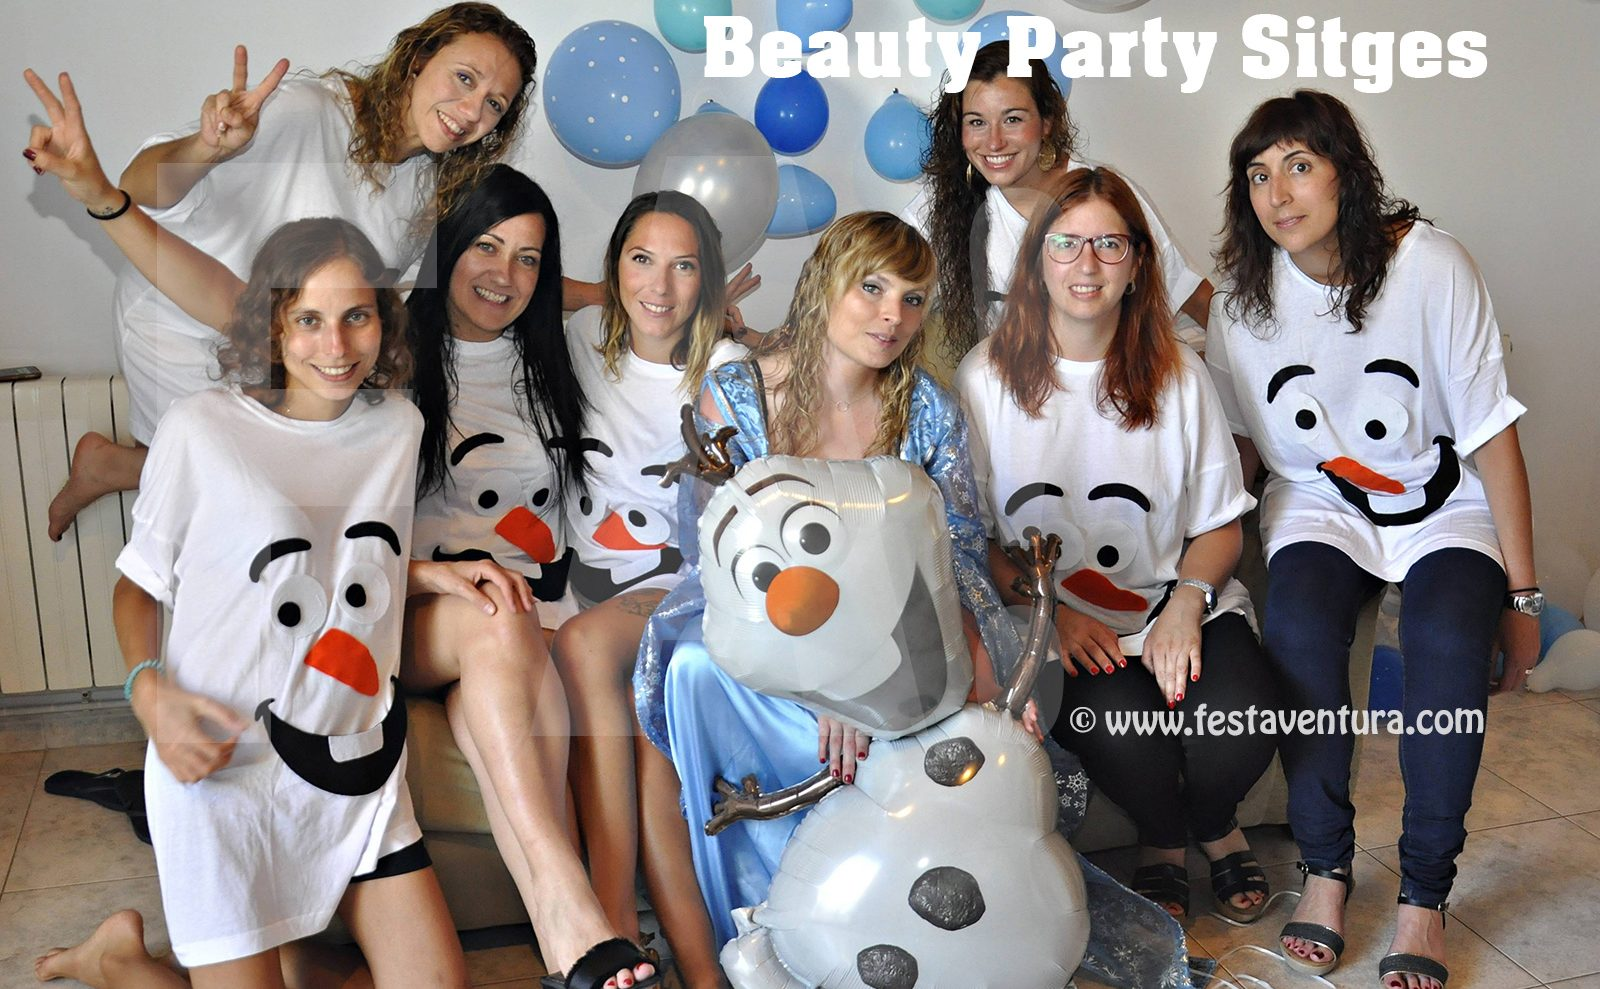 Beauty Party en Sitges